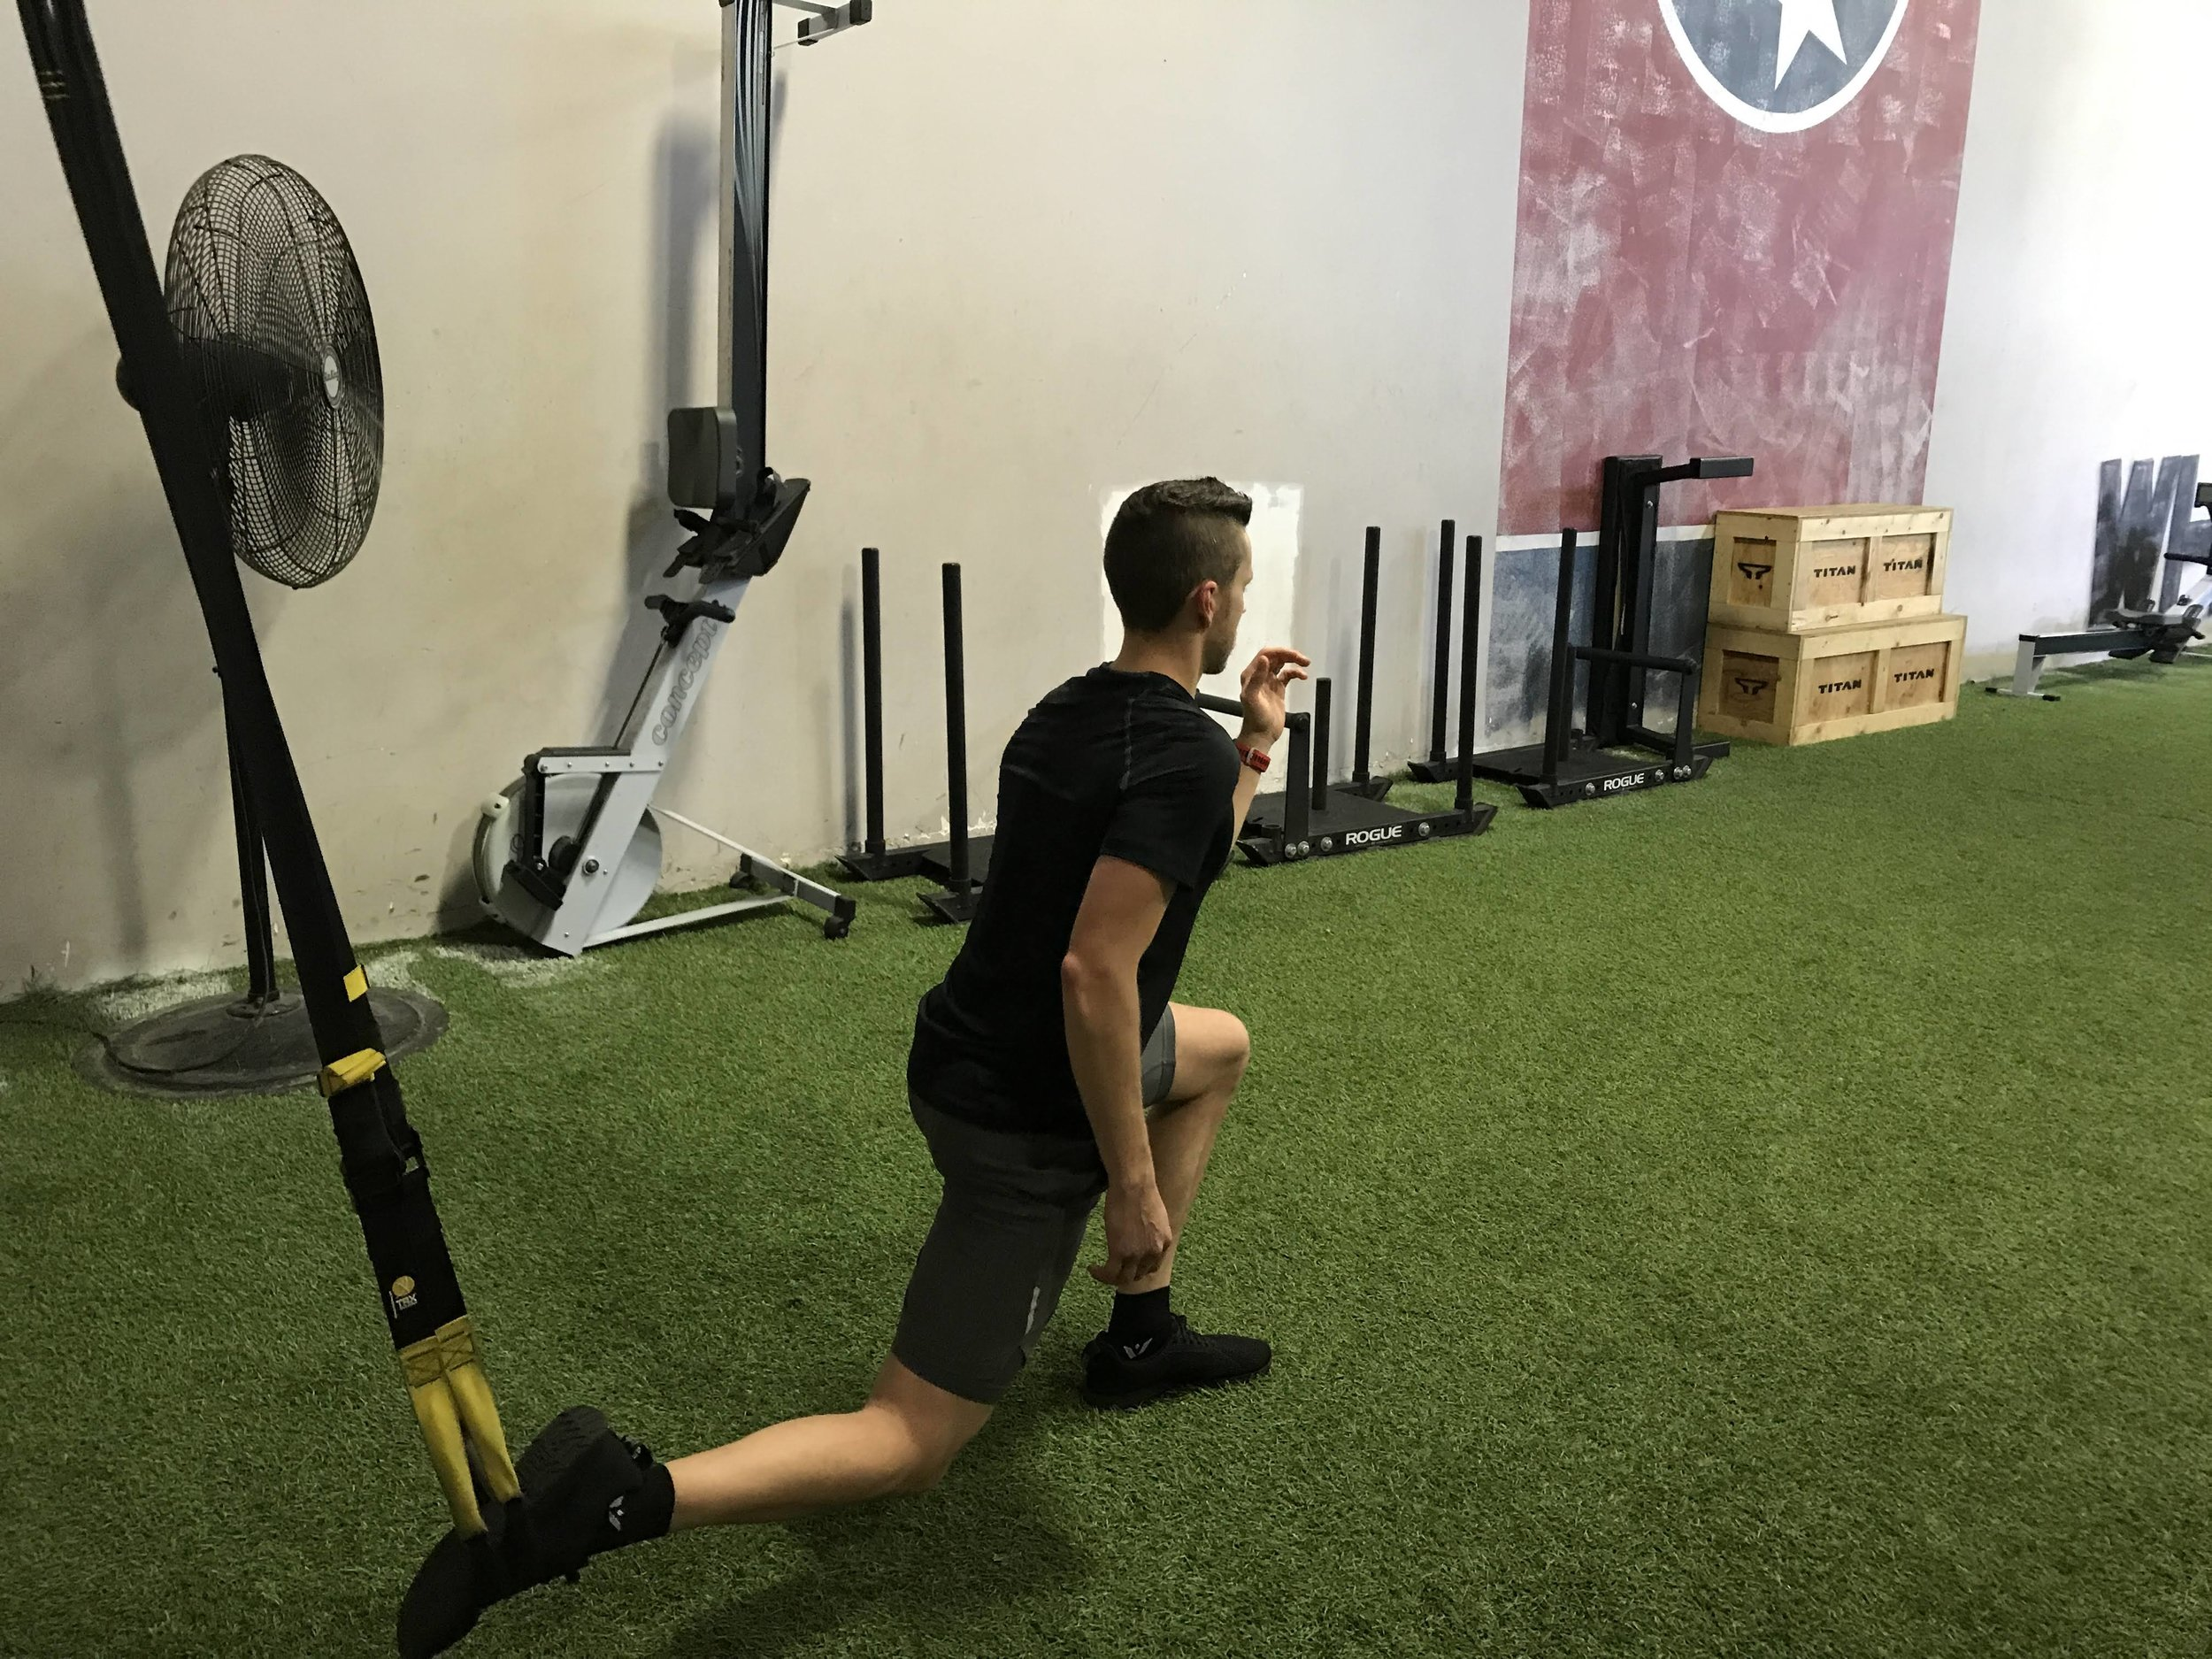 TRX is great cross training and sports injury rehab. Using TRX here on a runner for unilateral quad/glute strengthening.